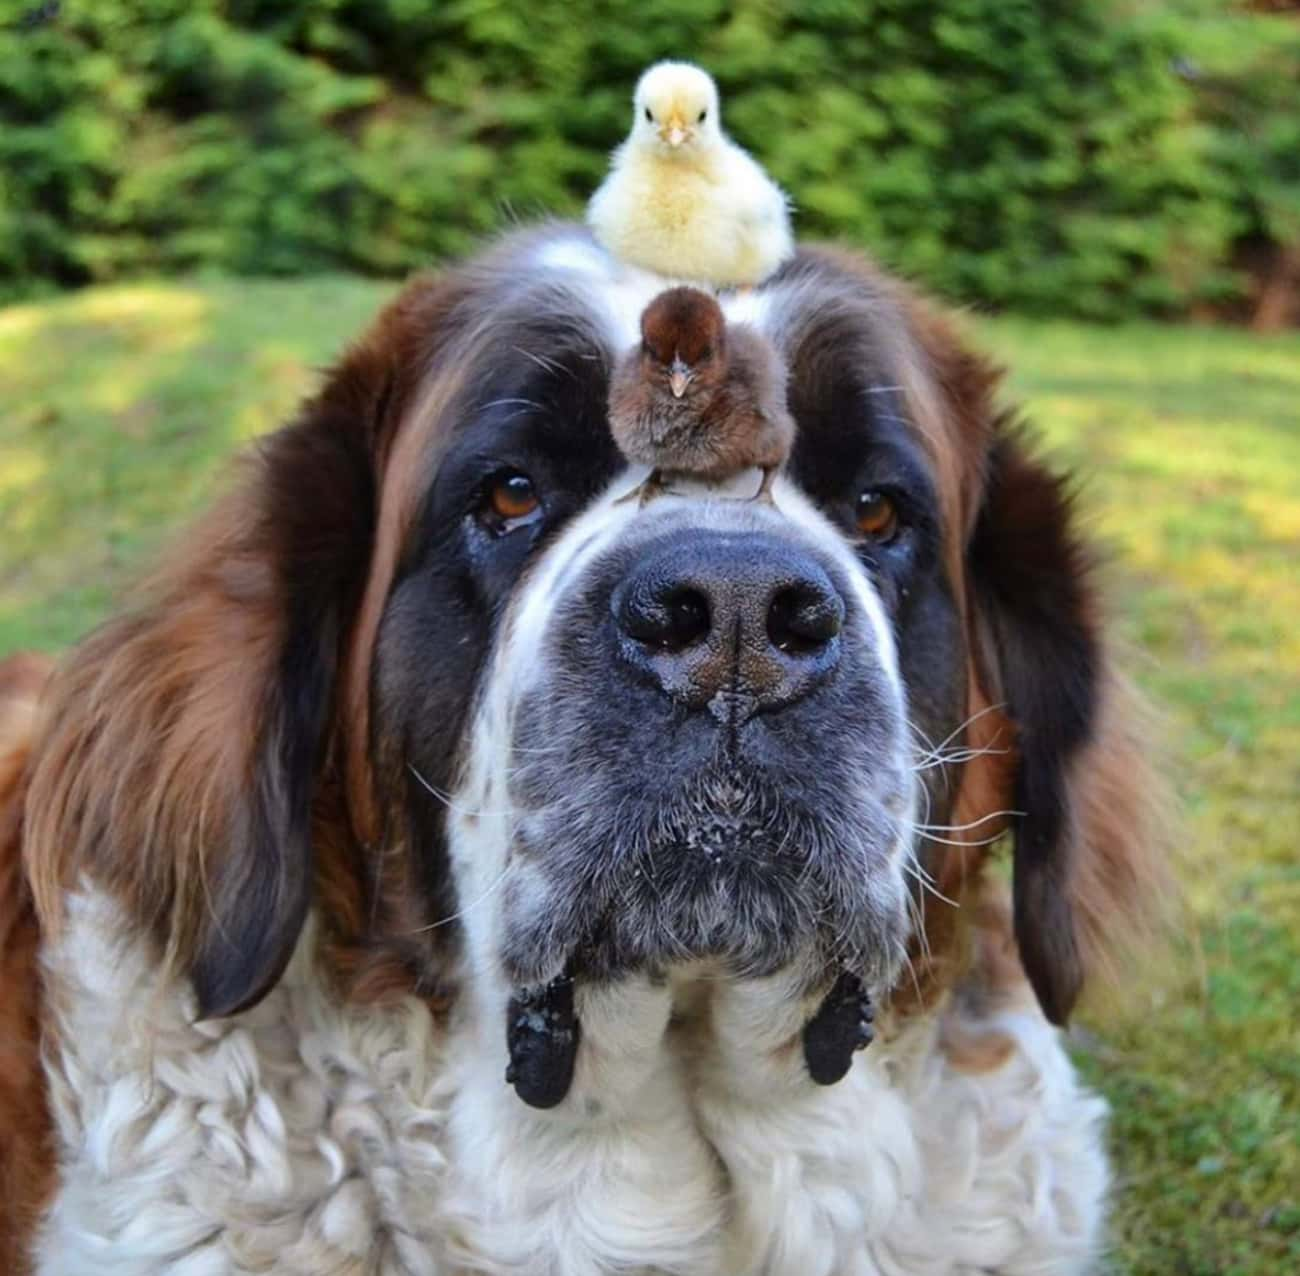 Isolde + Chicks is listed (or ranked) 4 on the list 25 Animal Best Friends Because We Need Some Positivity Right Now